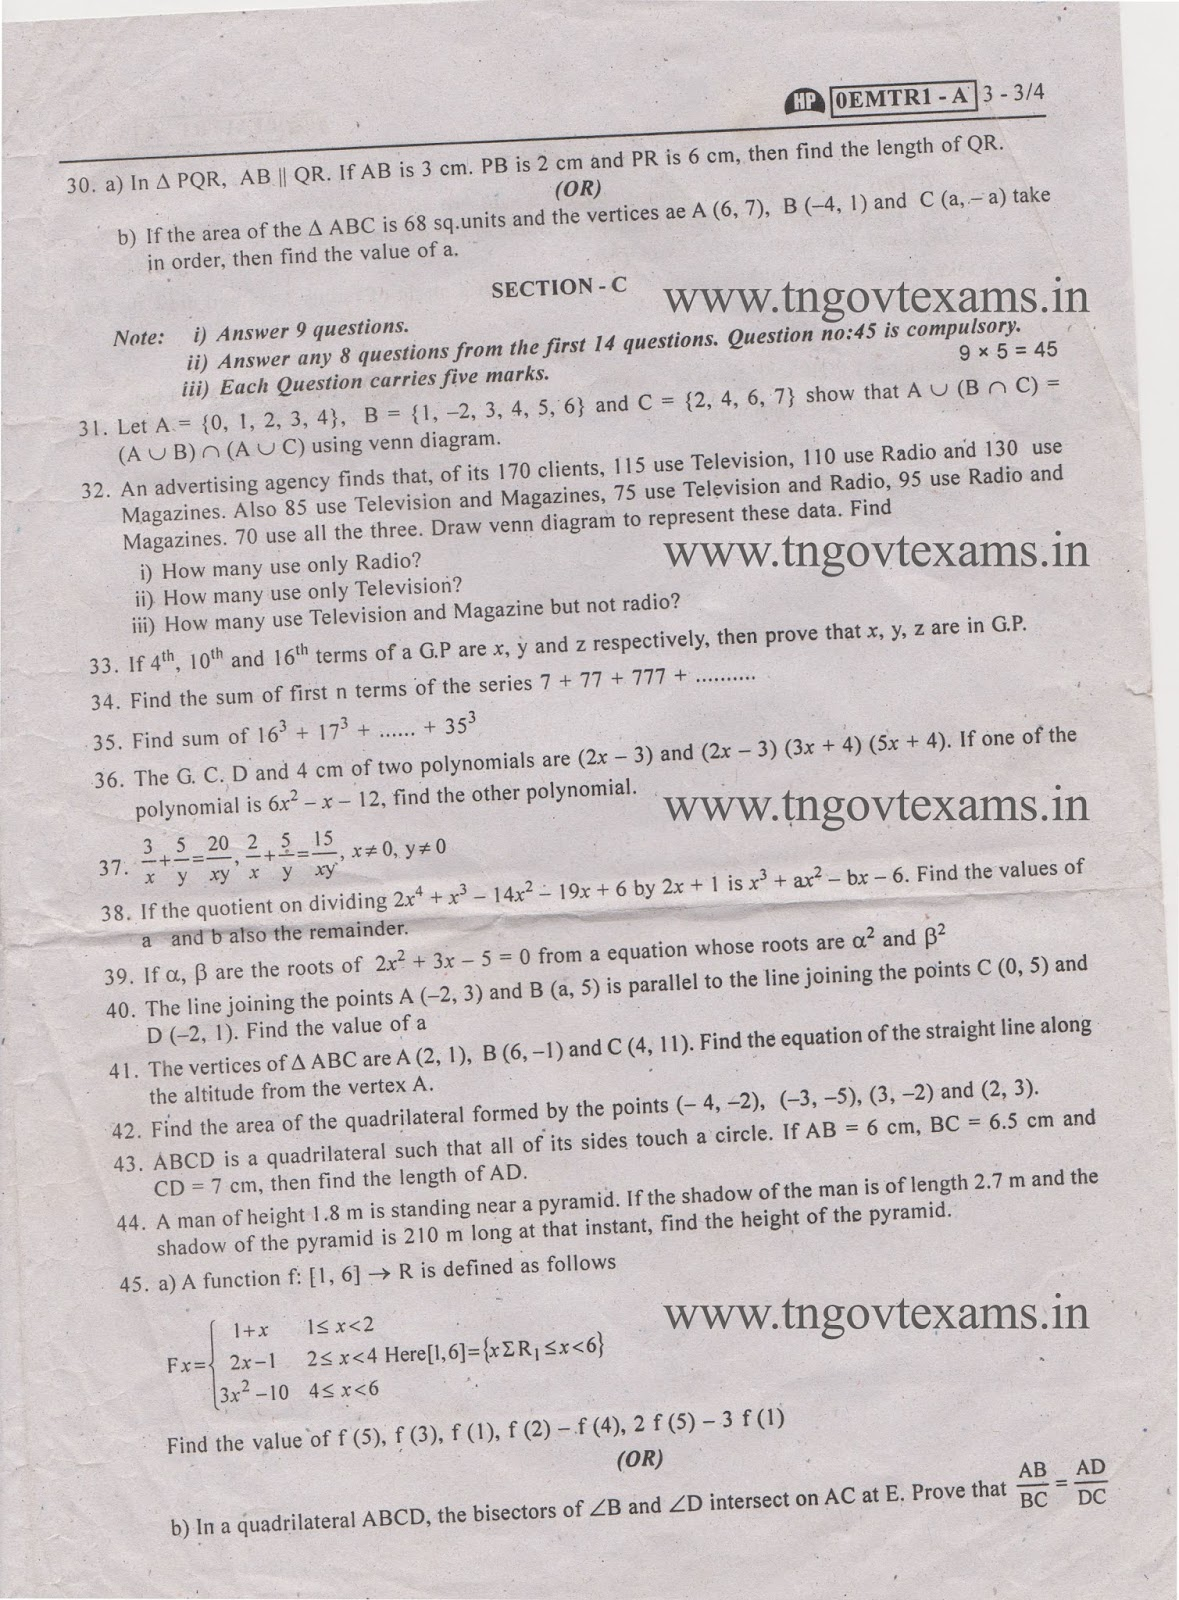 Tamil Nadu 10th Revision exam Maths question paper English Medium 2014 Download